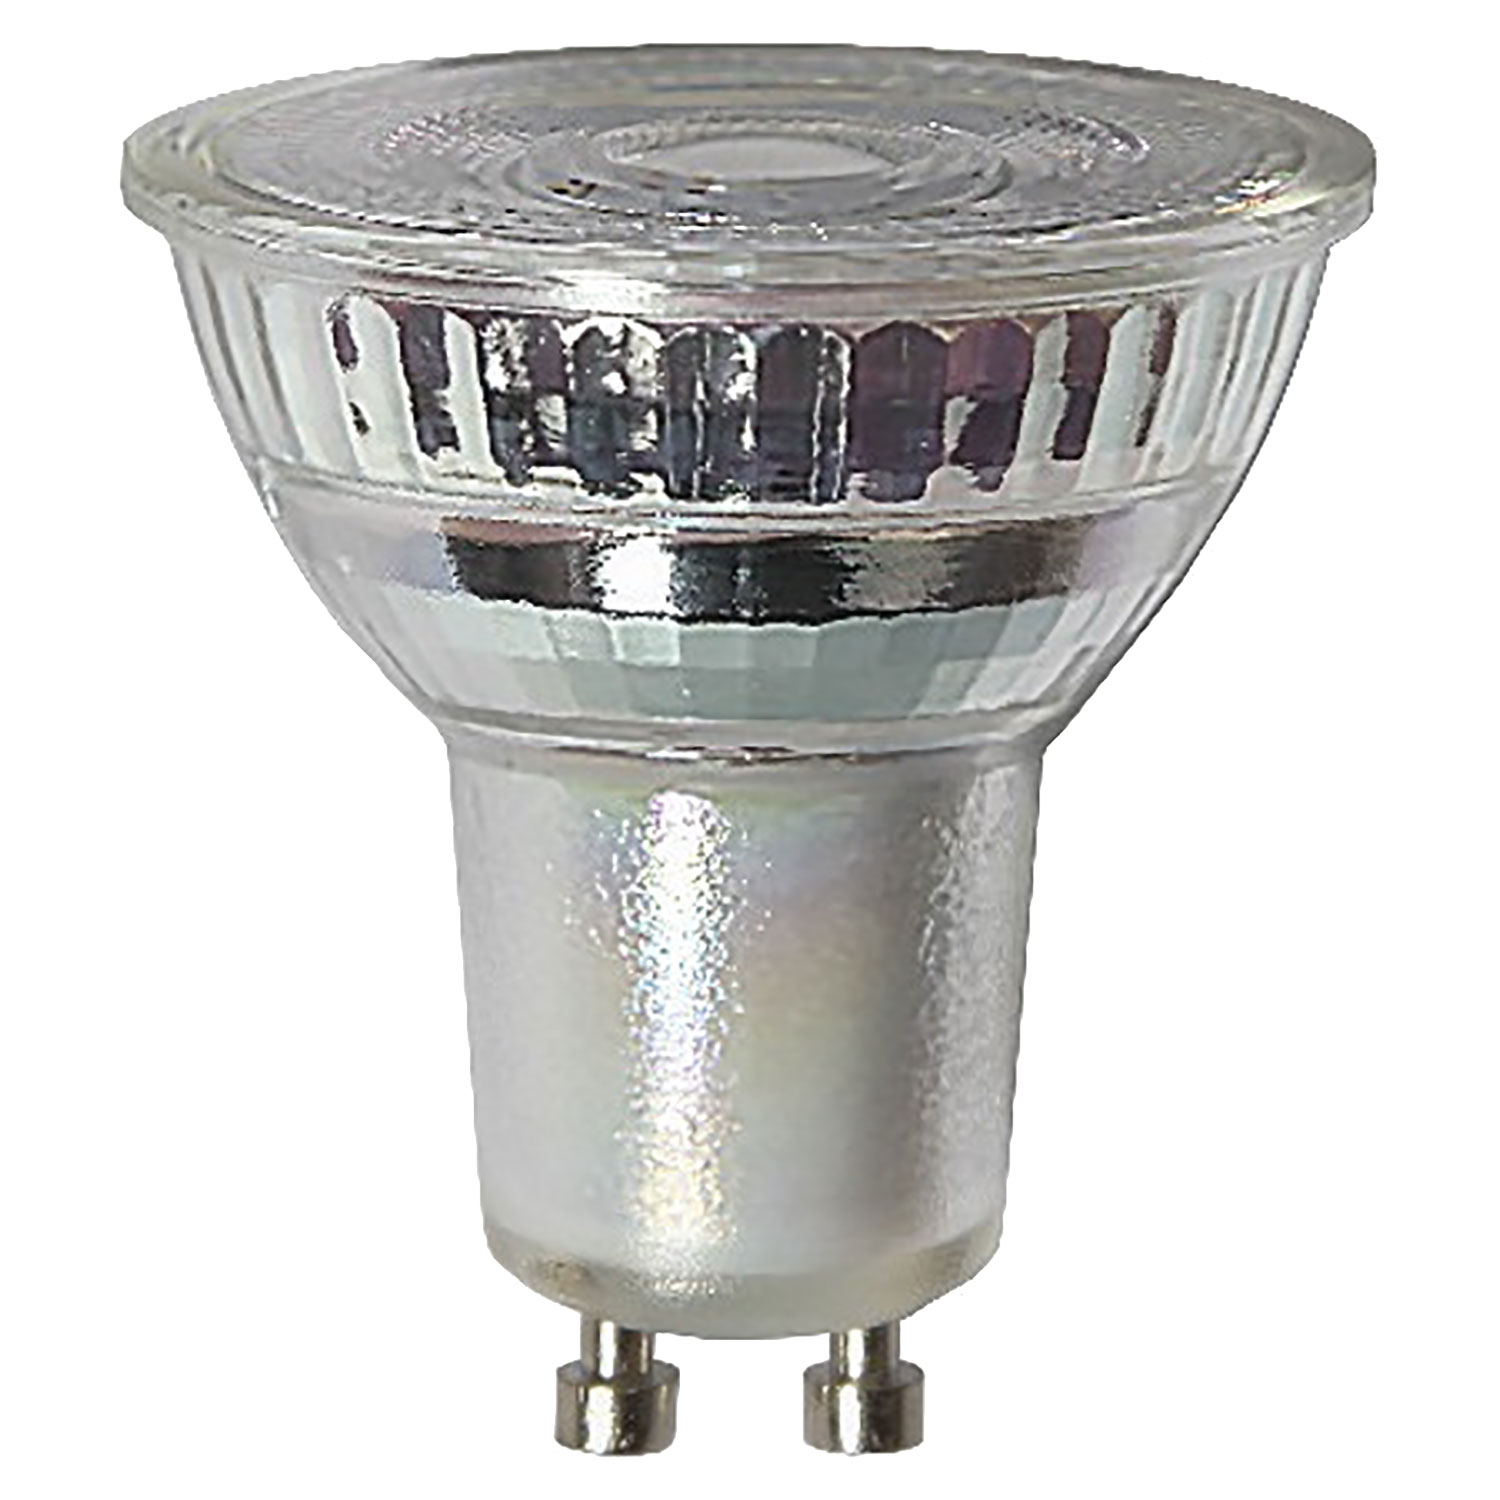 LED-lampa GU10 MR16 spotlight, transparent